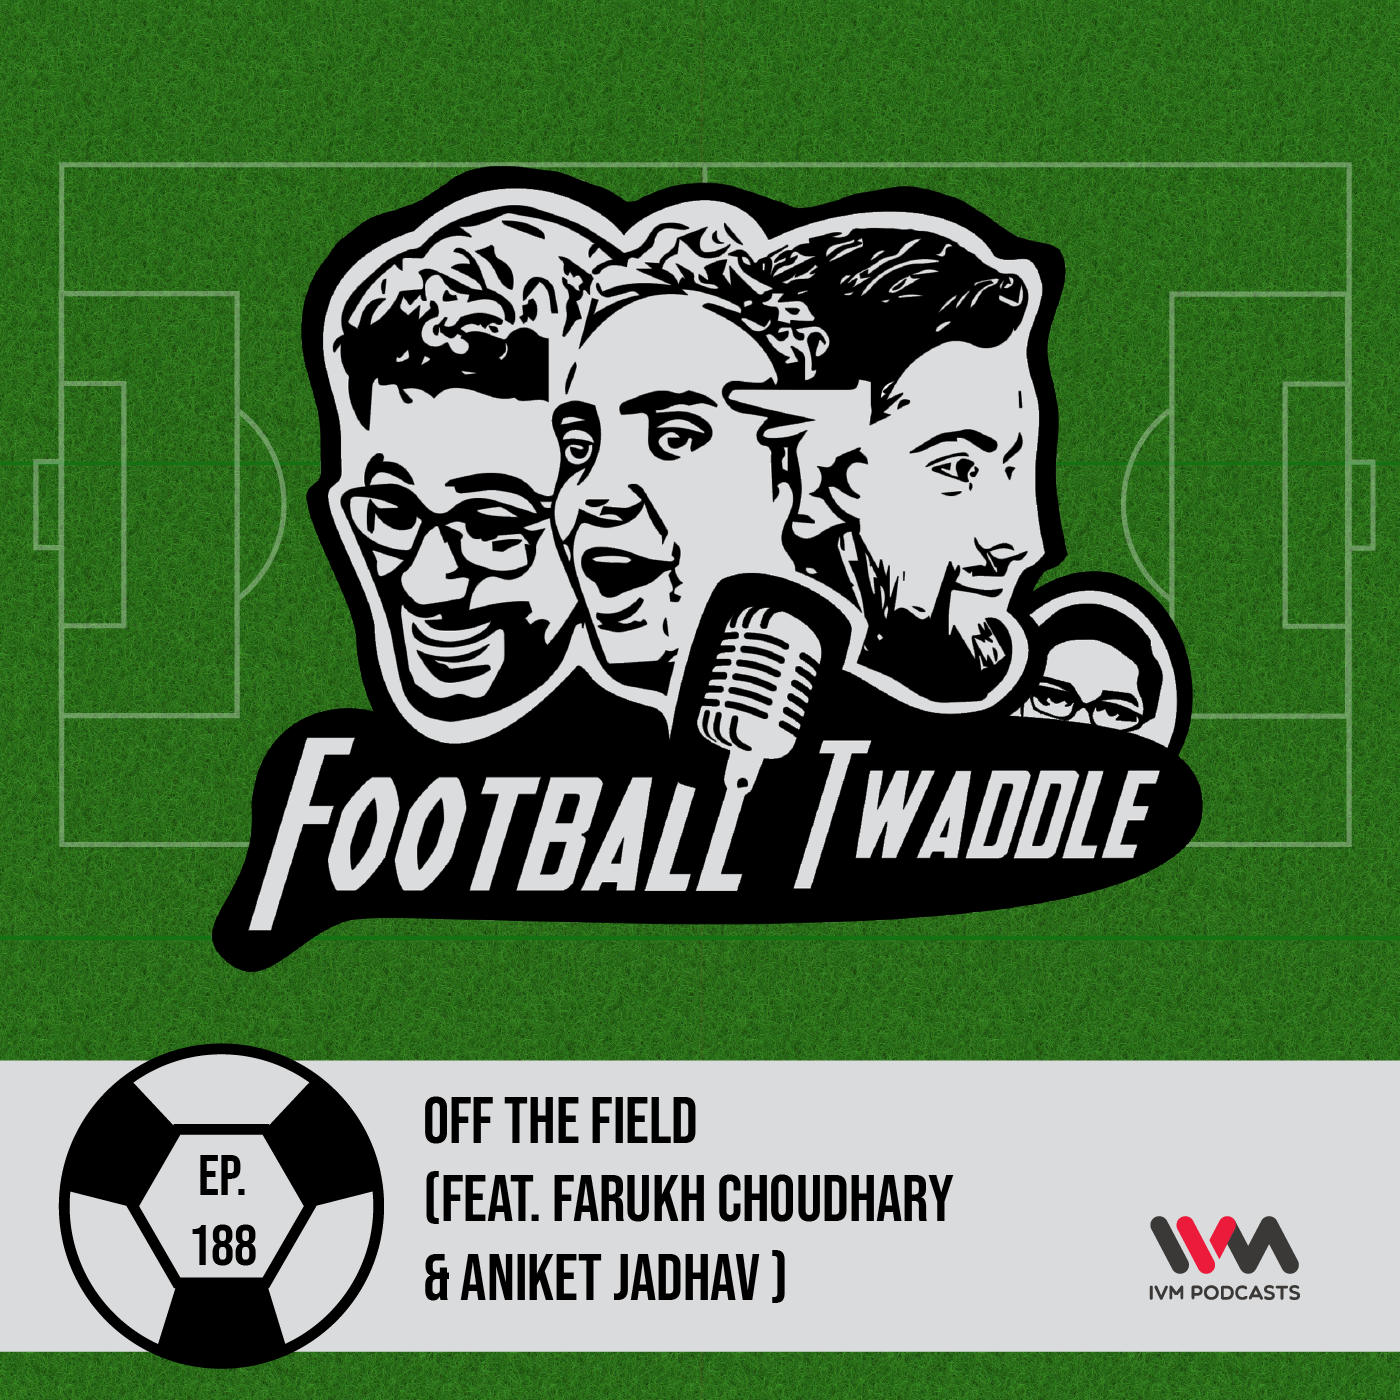 Off The Field (Feat. Farukh Choudhary & Aniket Jadhav )